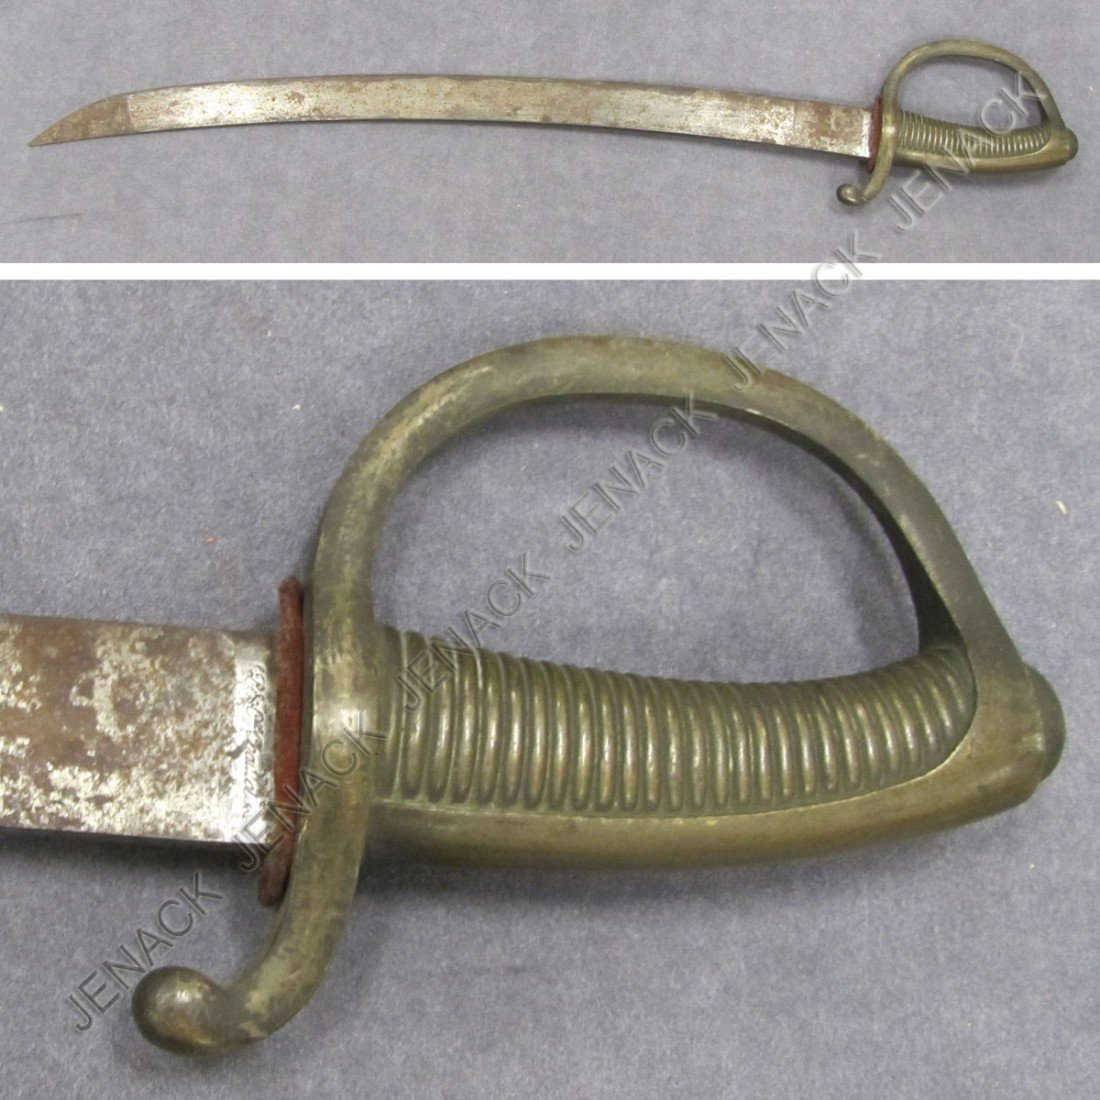 2: FRENCH ARTILLERY SABER, SIGNED 19TH CENTURY